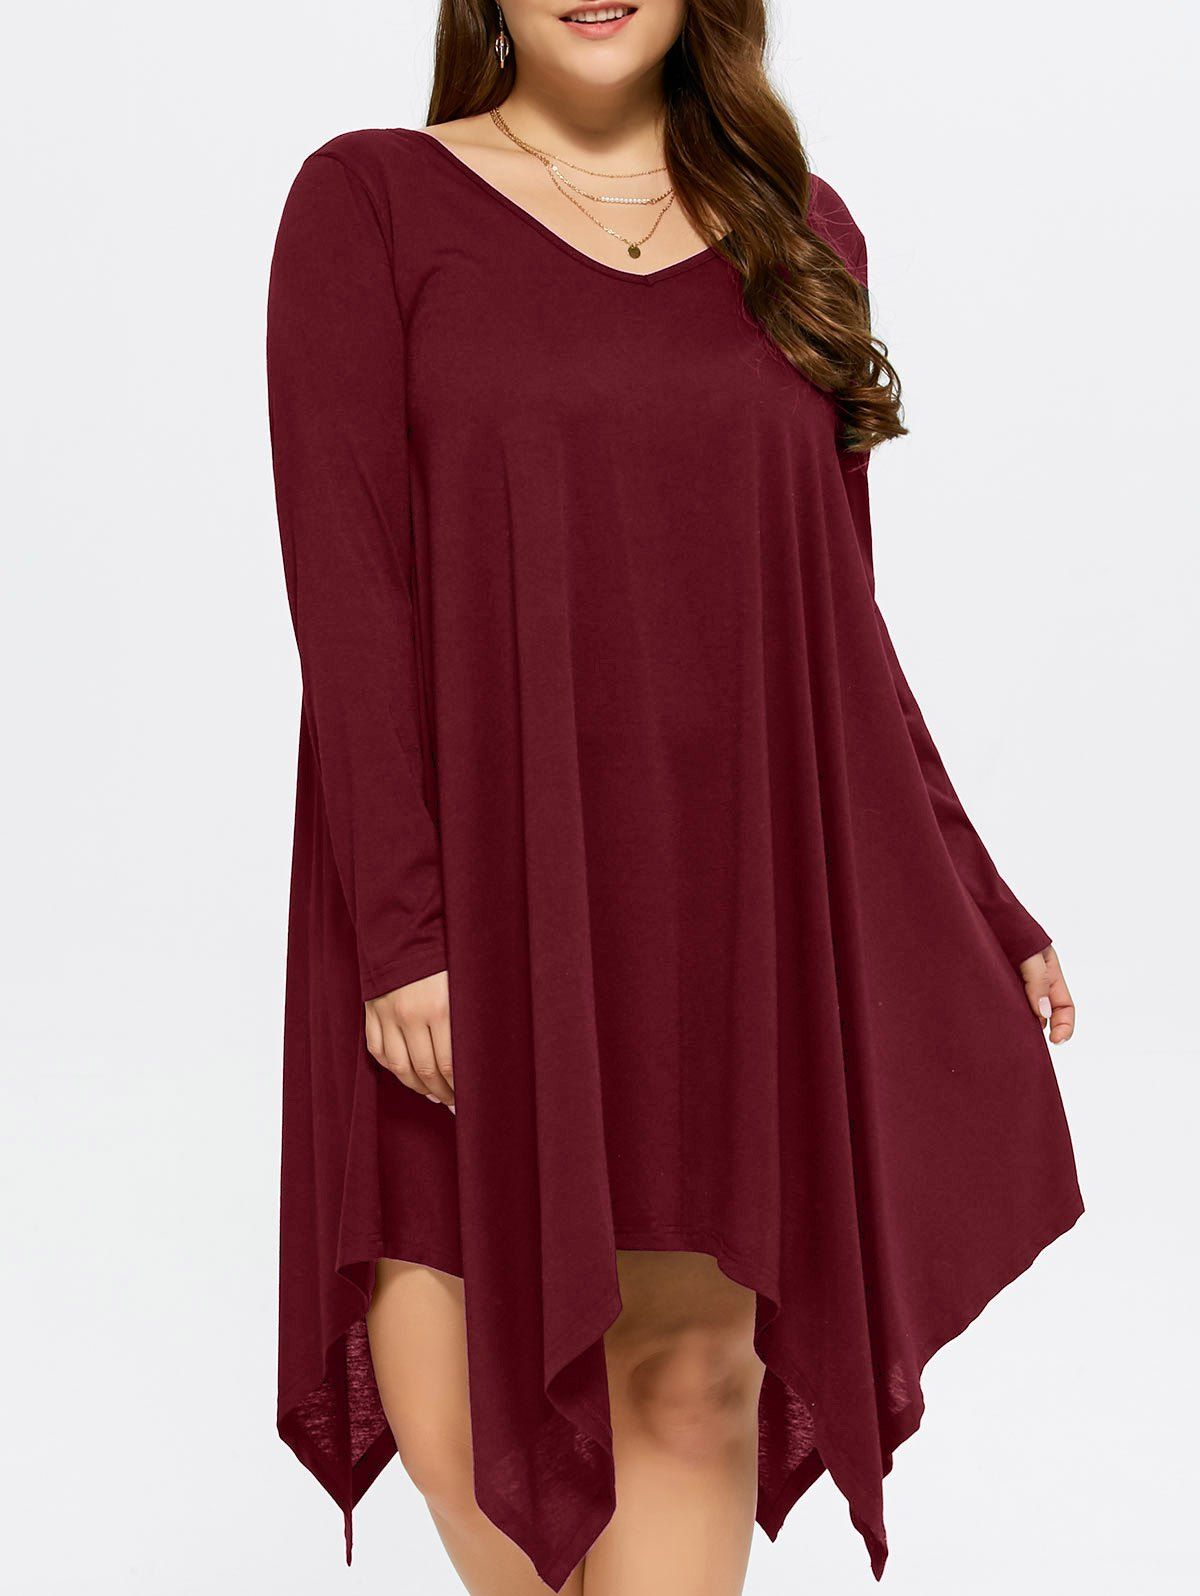 $9.00 plus size asymmetrical loose fitting dress in dark red